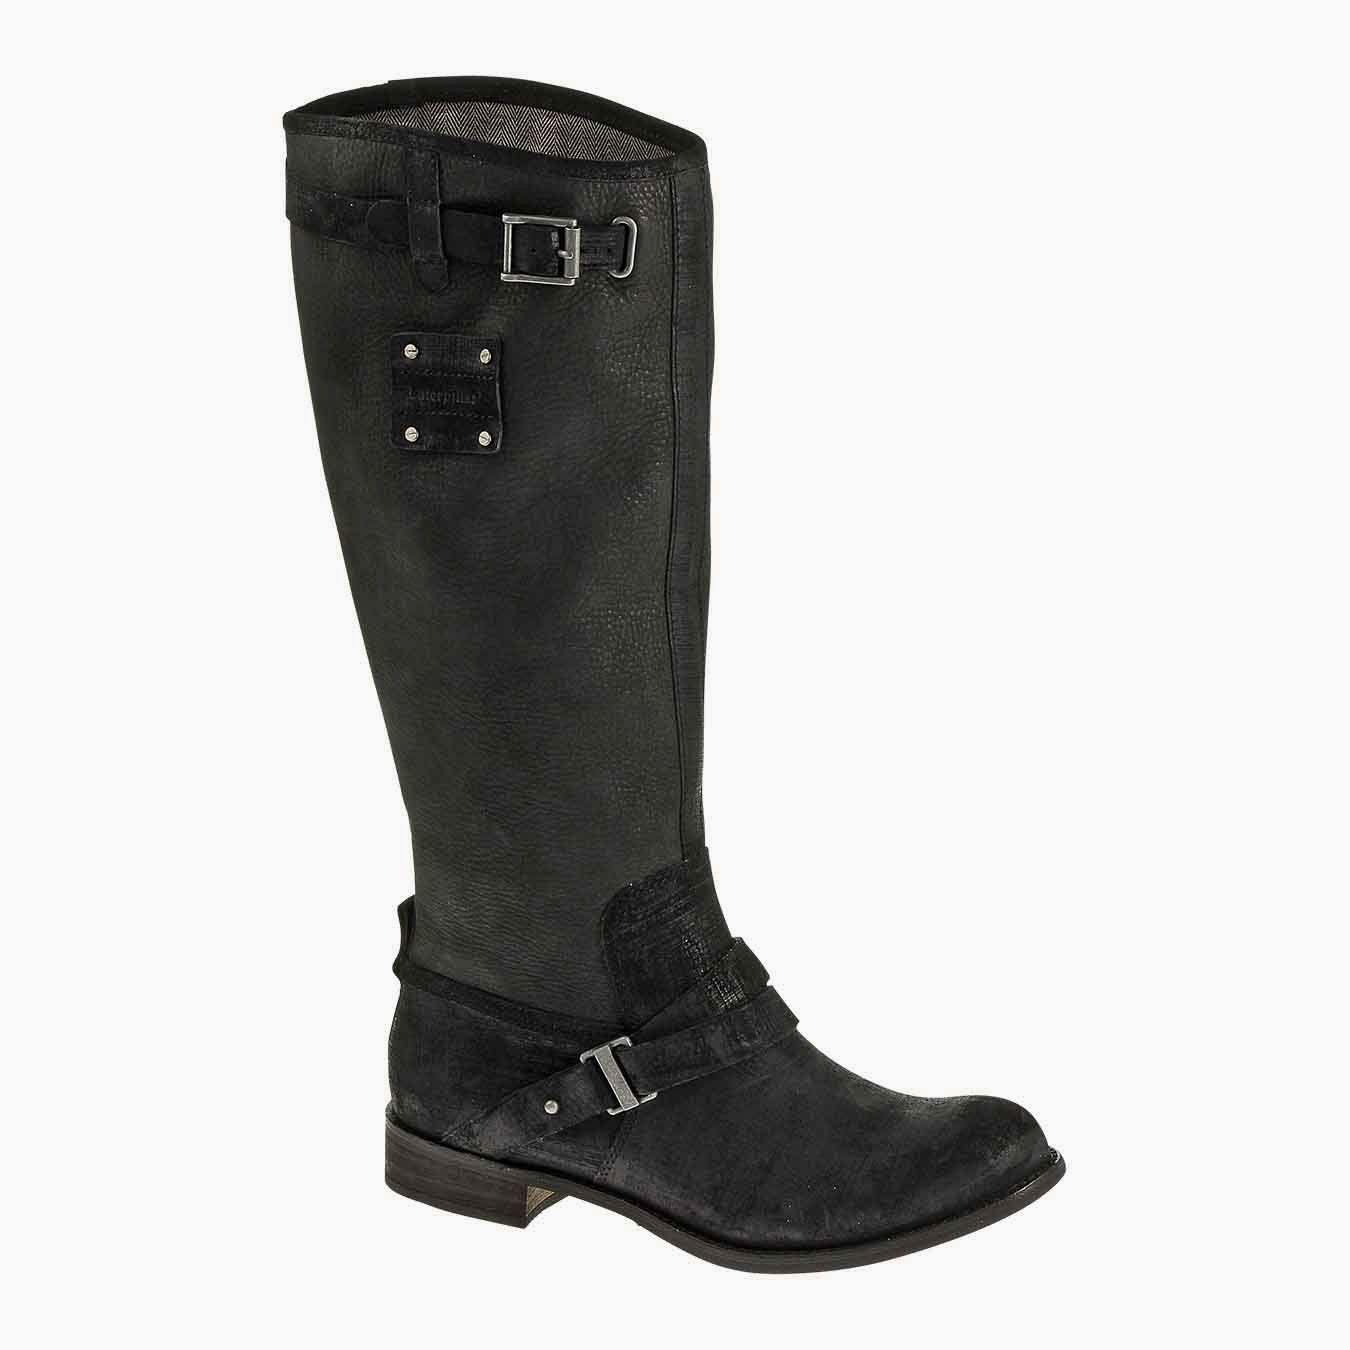 #CatFootwear Women's Corrine in Black, $200, #ridingboot #AW14